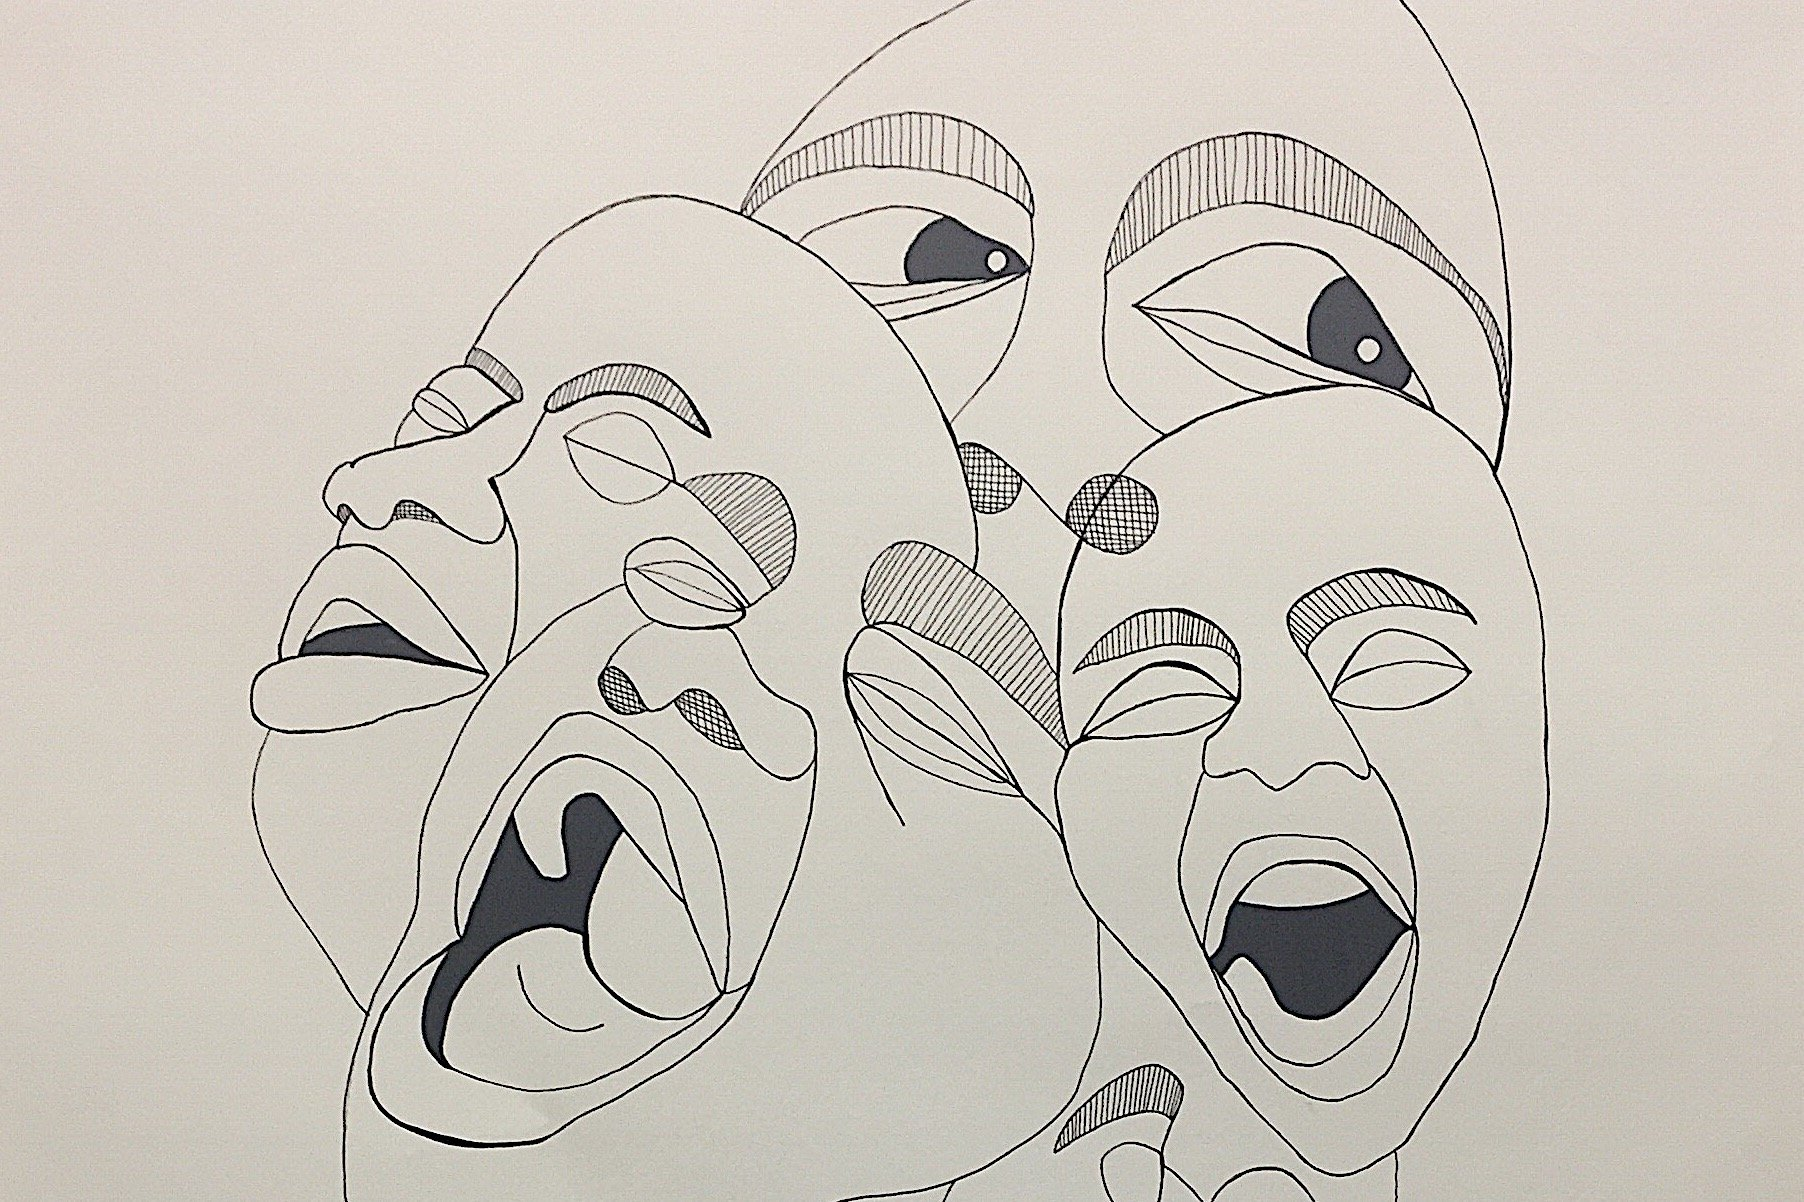 Contemporary Black Identity: Mouth, Ink on Paper, 19 x 24 in, 2018